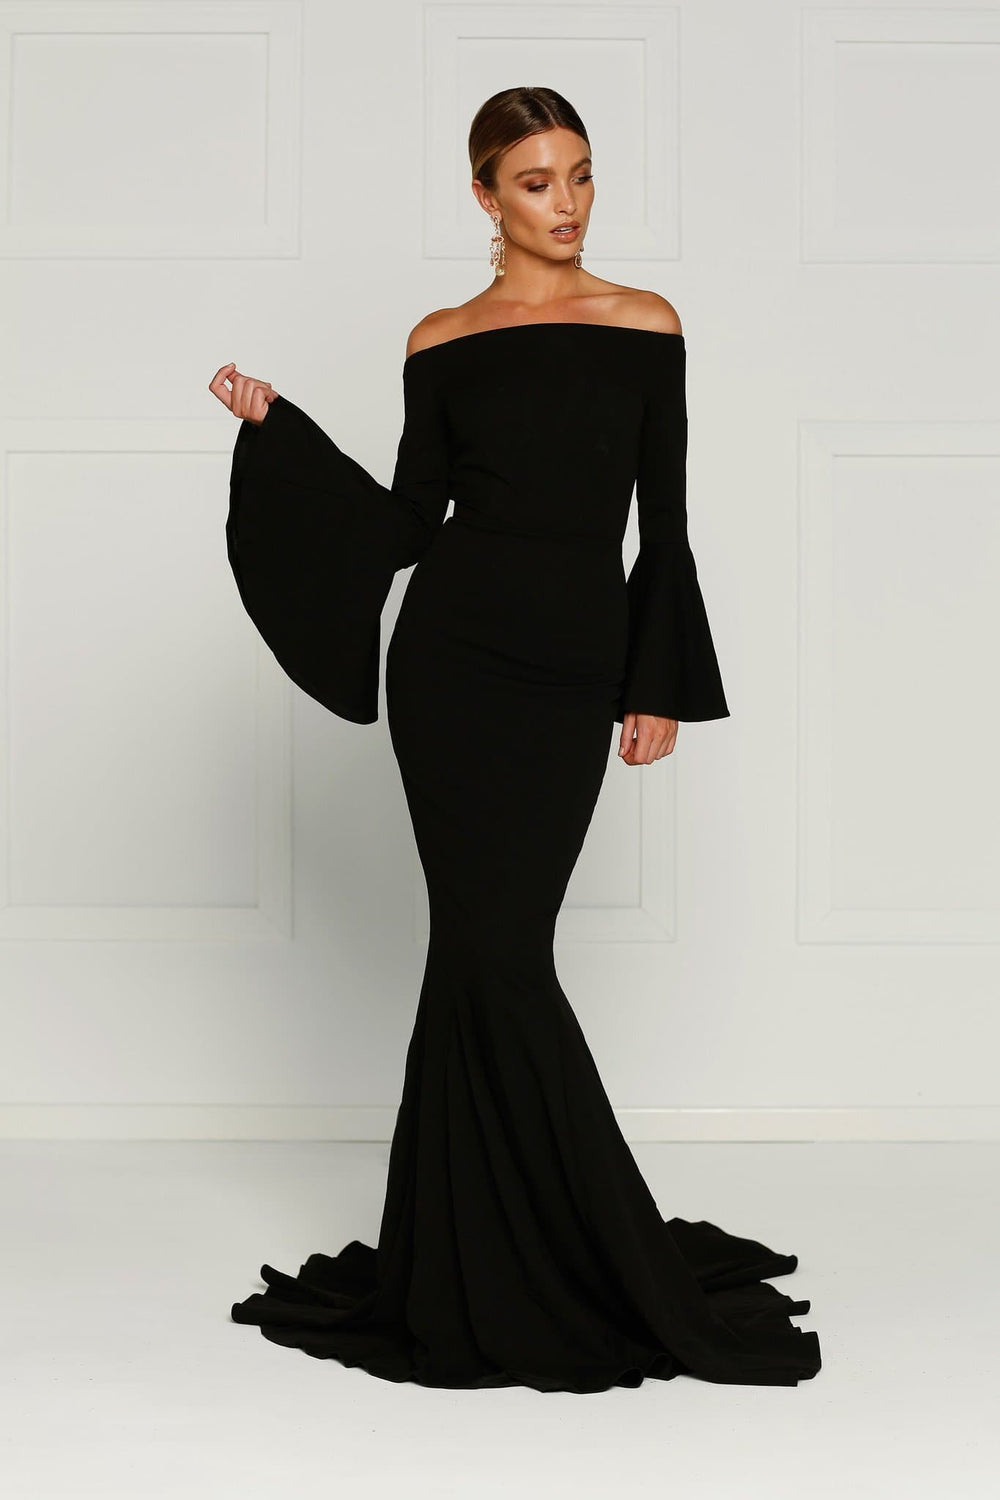 Amore - Black Off Shoulder Gown with Long Flare Sleeves – A N Luxe Label 2e833219f